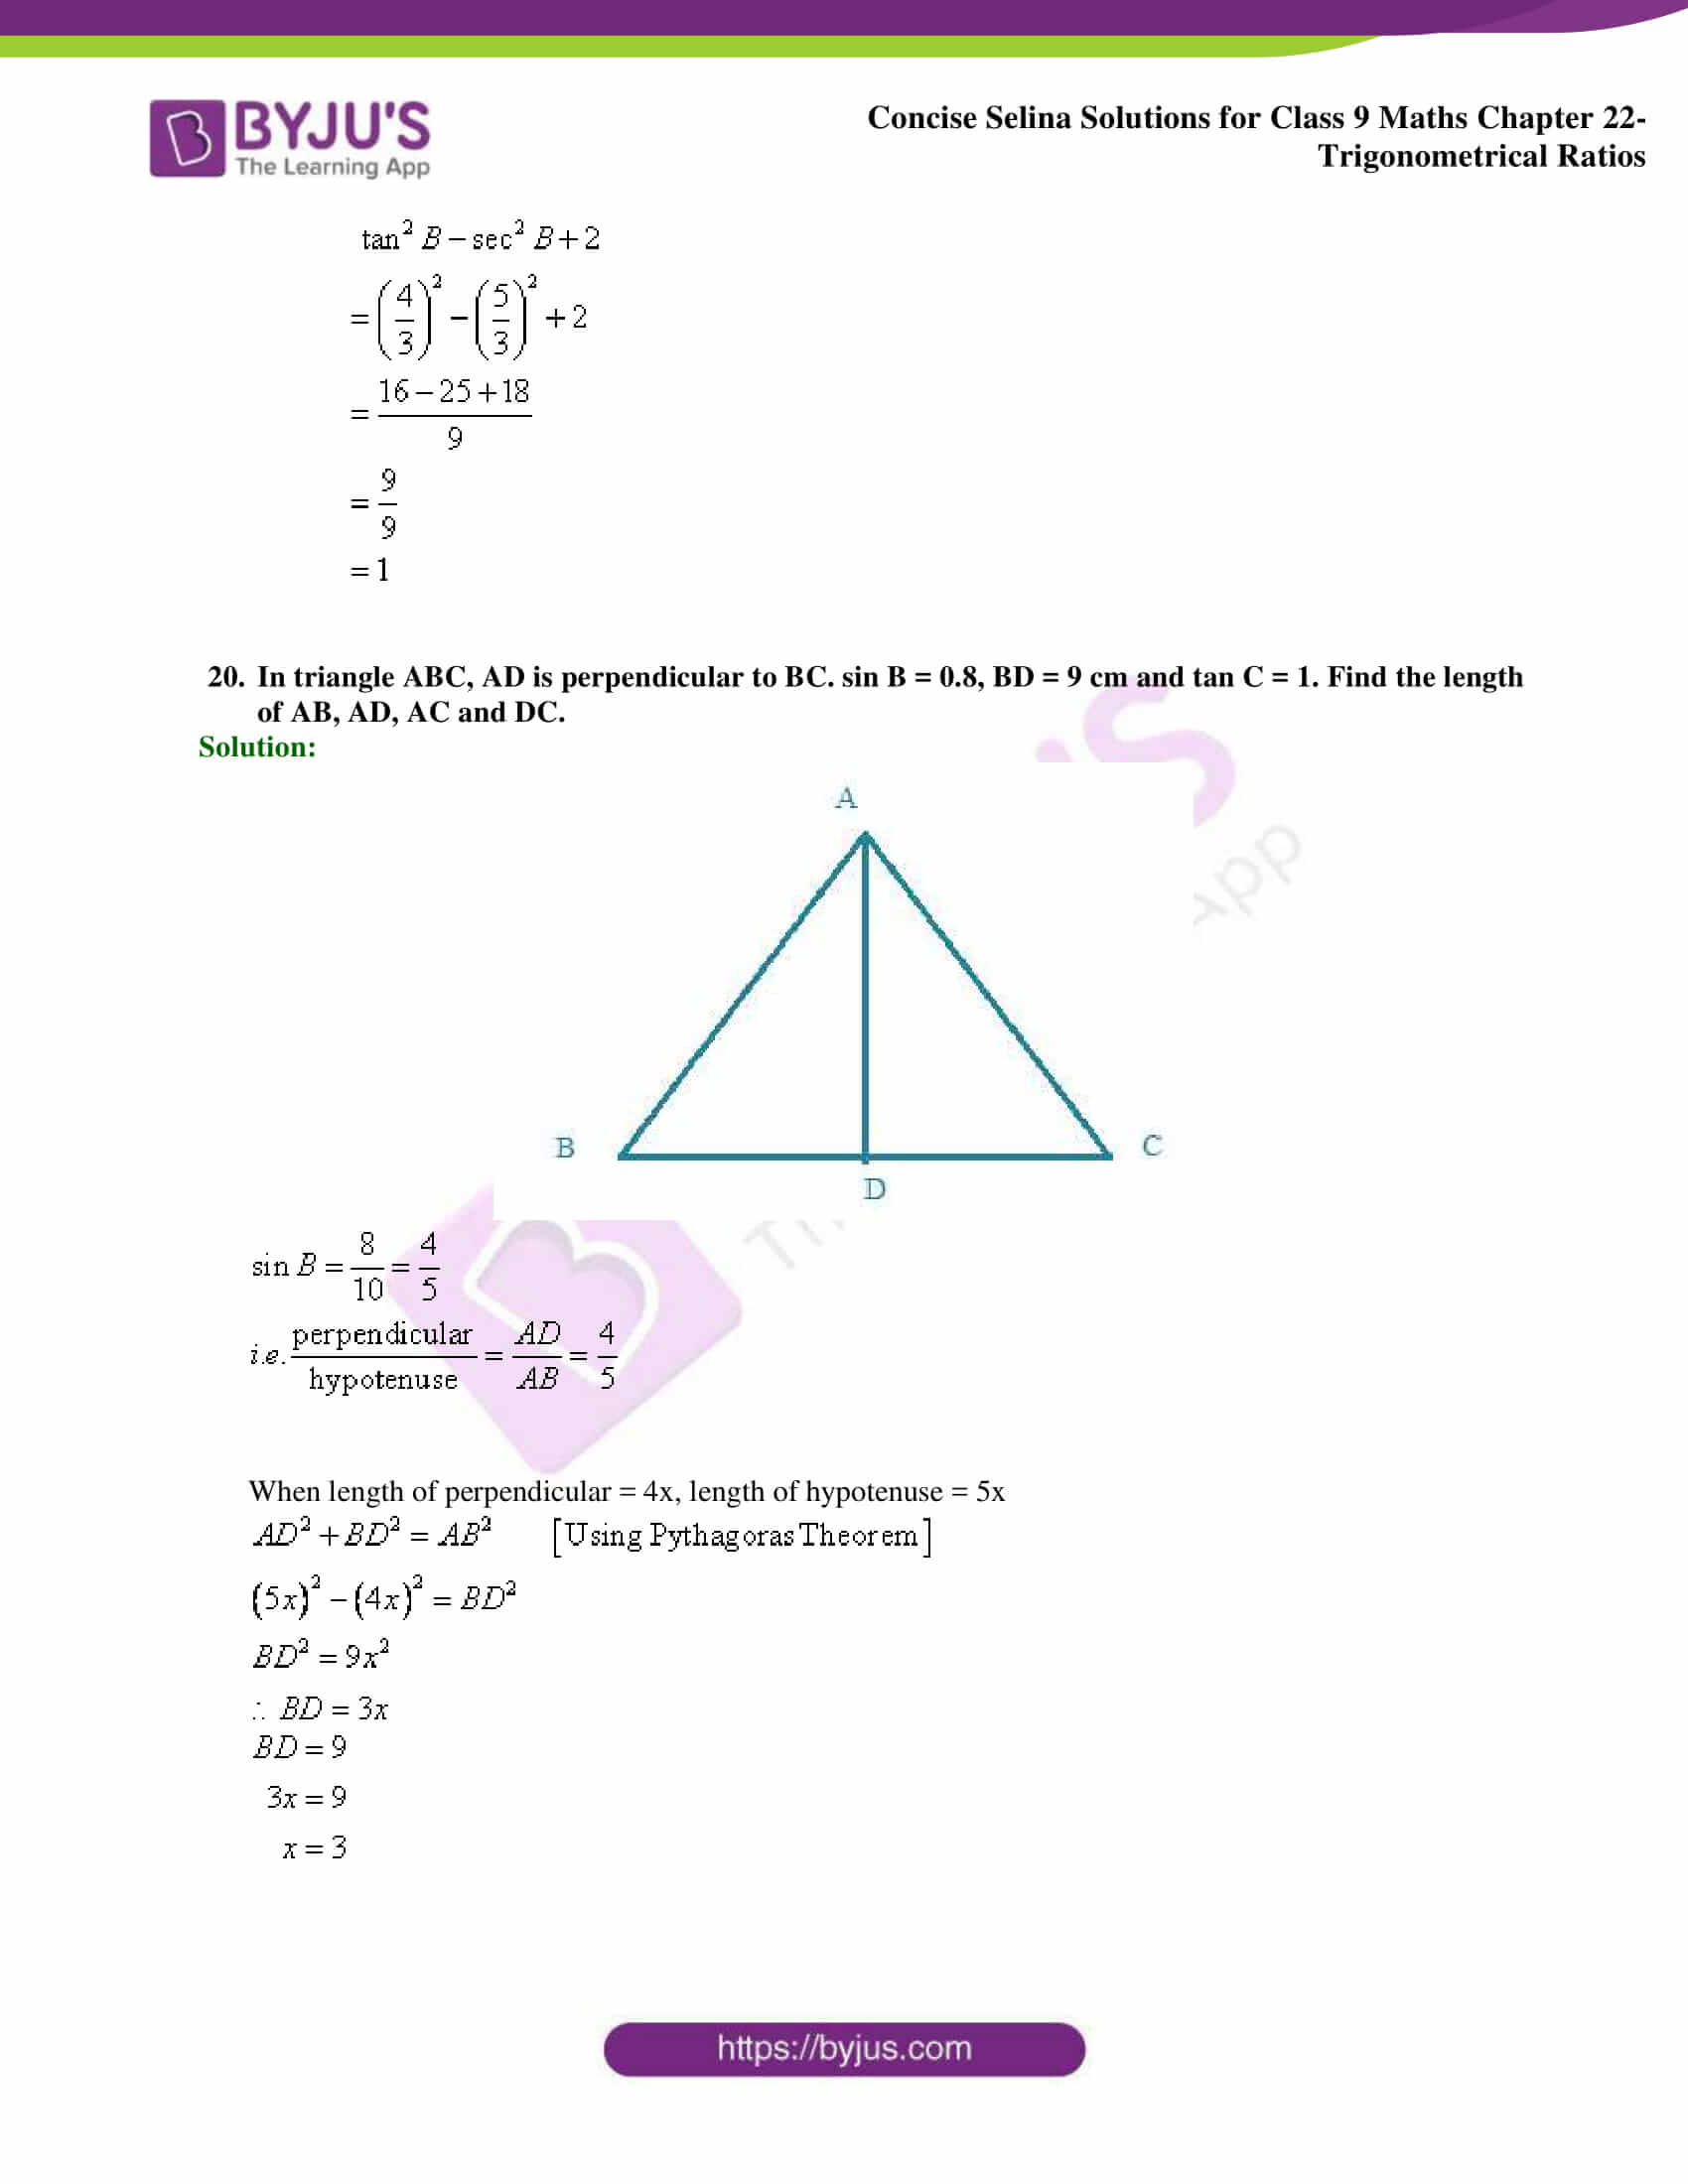 Concise Selina Solutions Class 9 Maths Chapter 22 Trigonometrical Ratios part 41